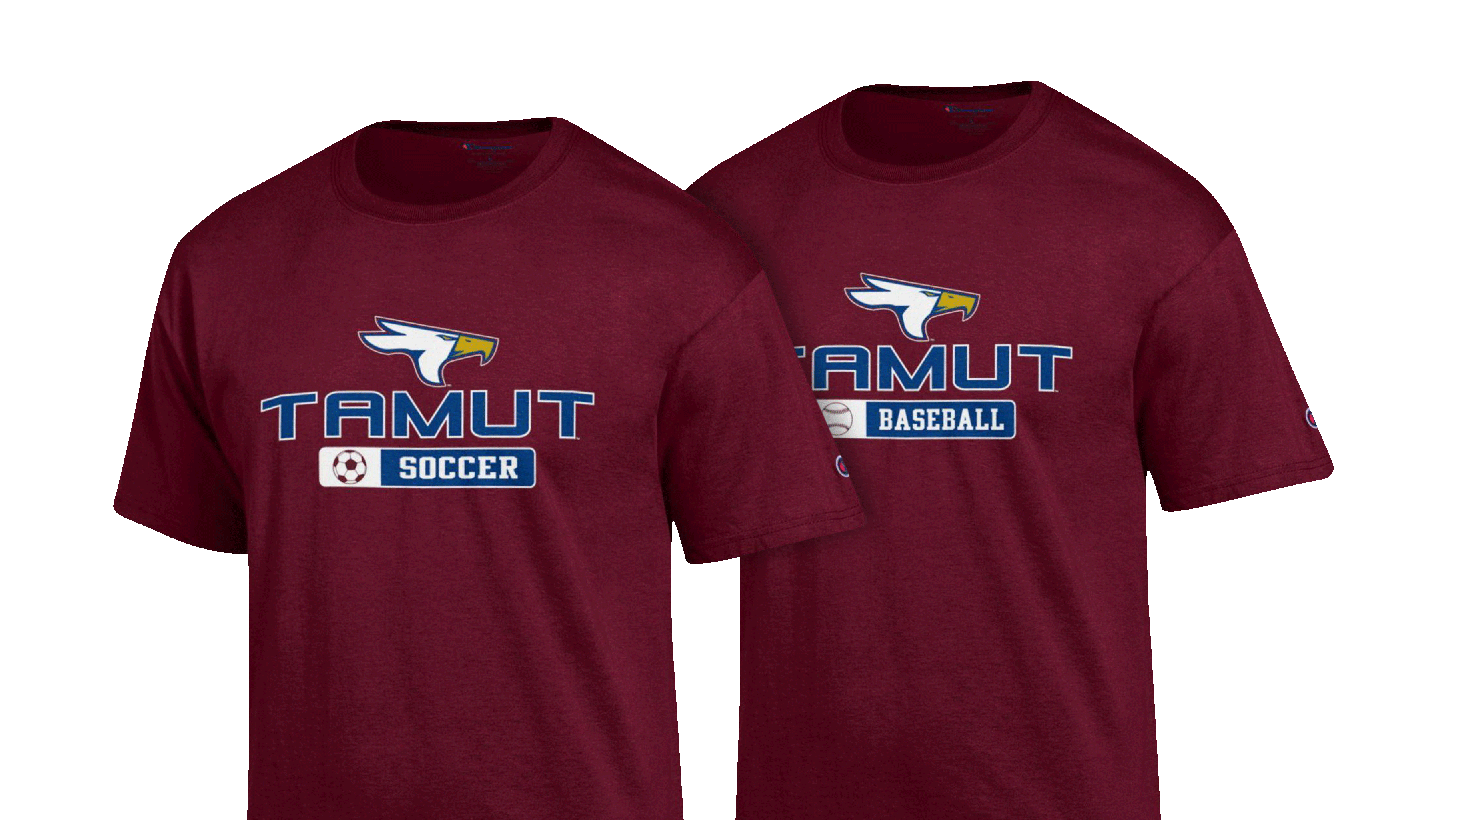 timeless design 8be73 bdc43 Texas A&M University - Texarkana Apparel, Merchandise, & Gifts